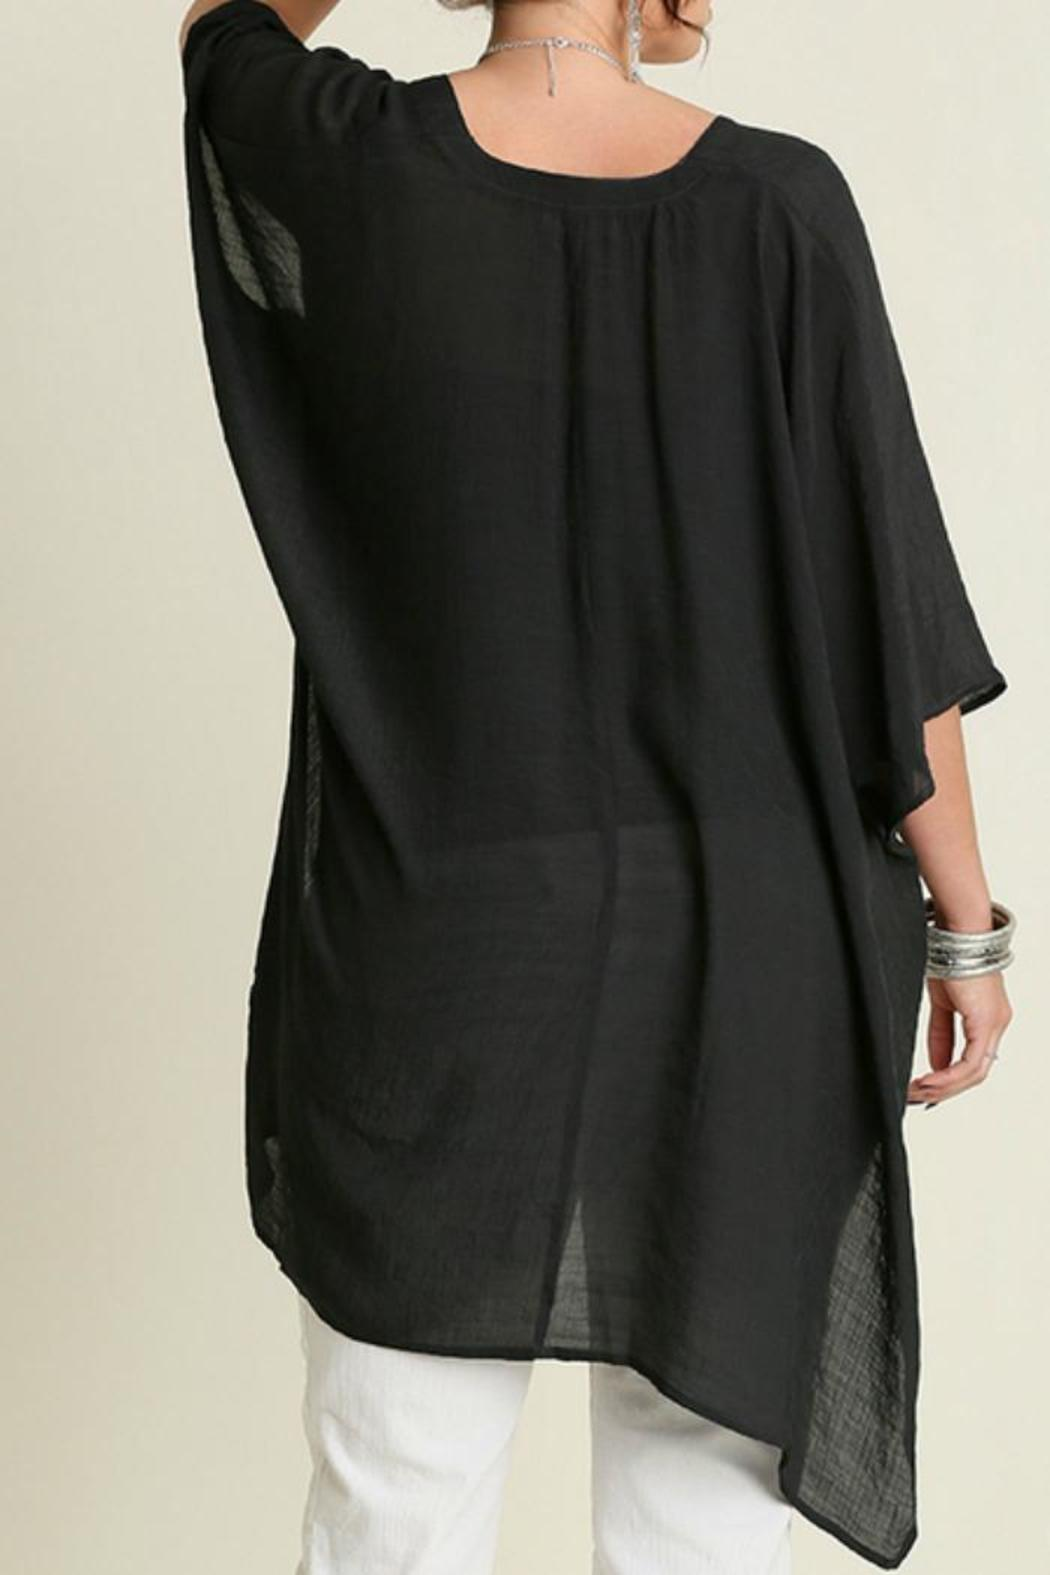 82993dc5ac3907 Umgee USA V-Neck Caftan from Franklin by Adalees — Shoptiques